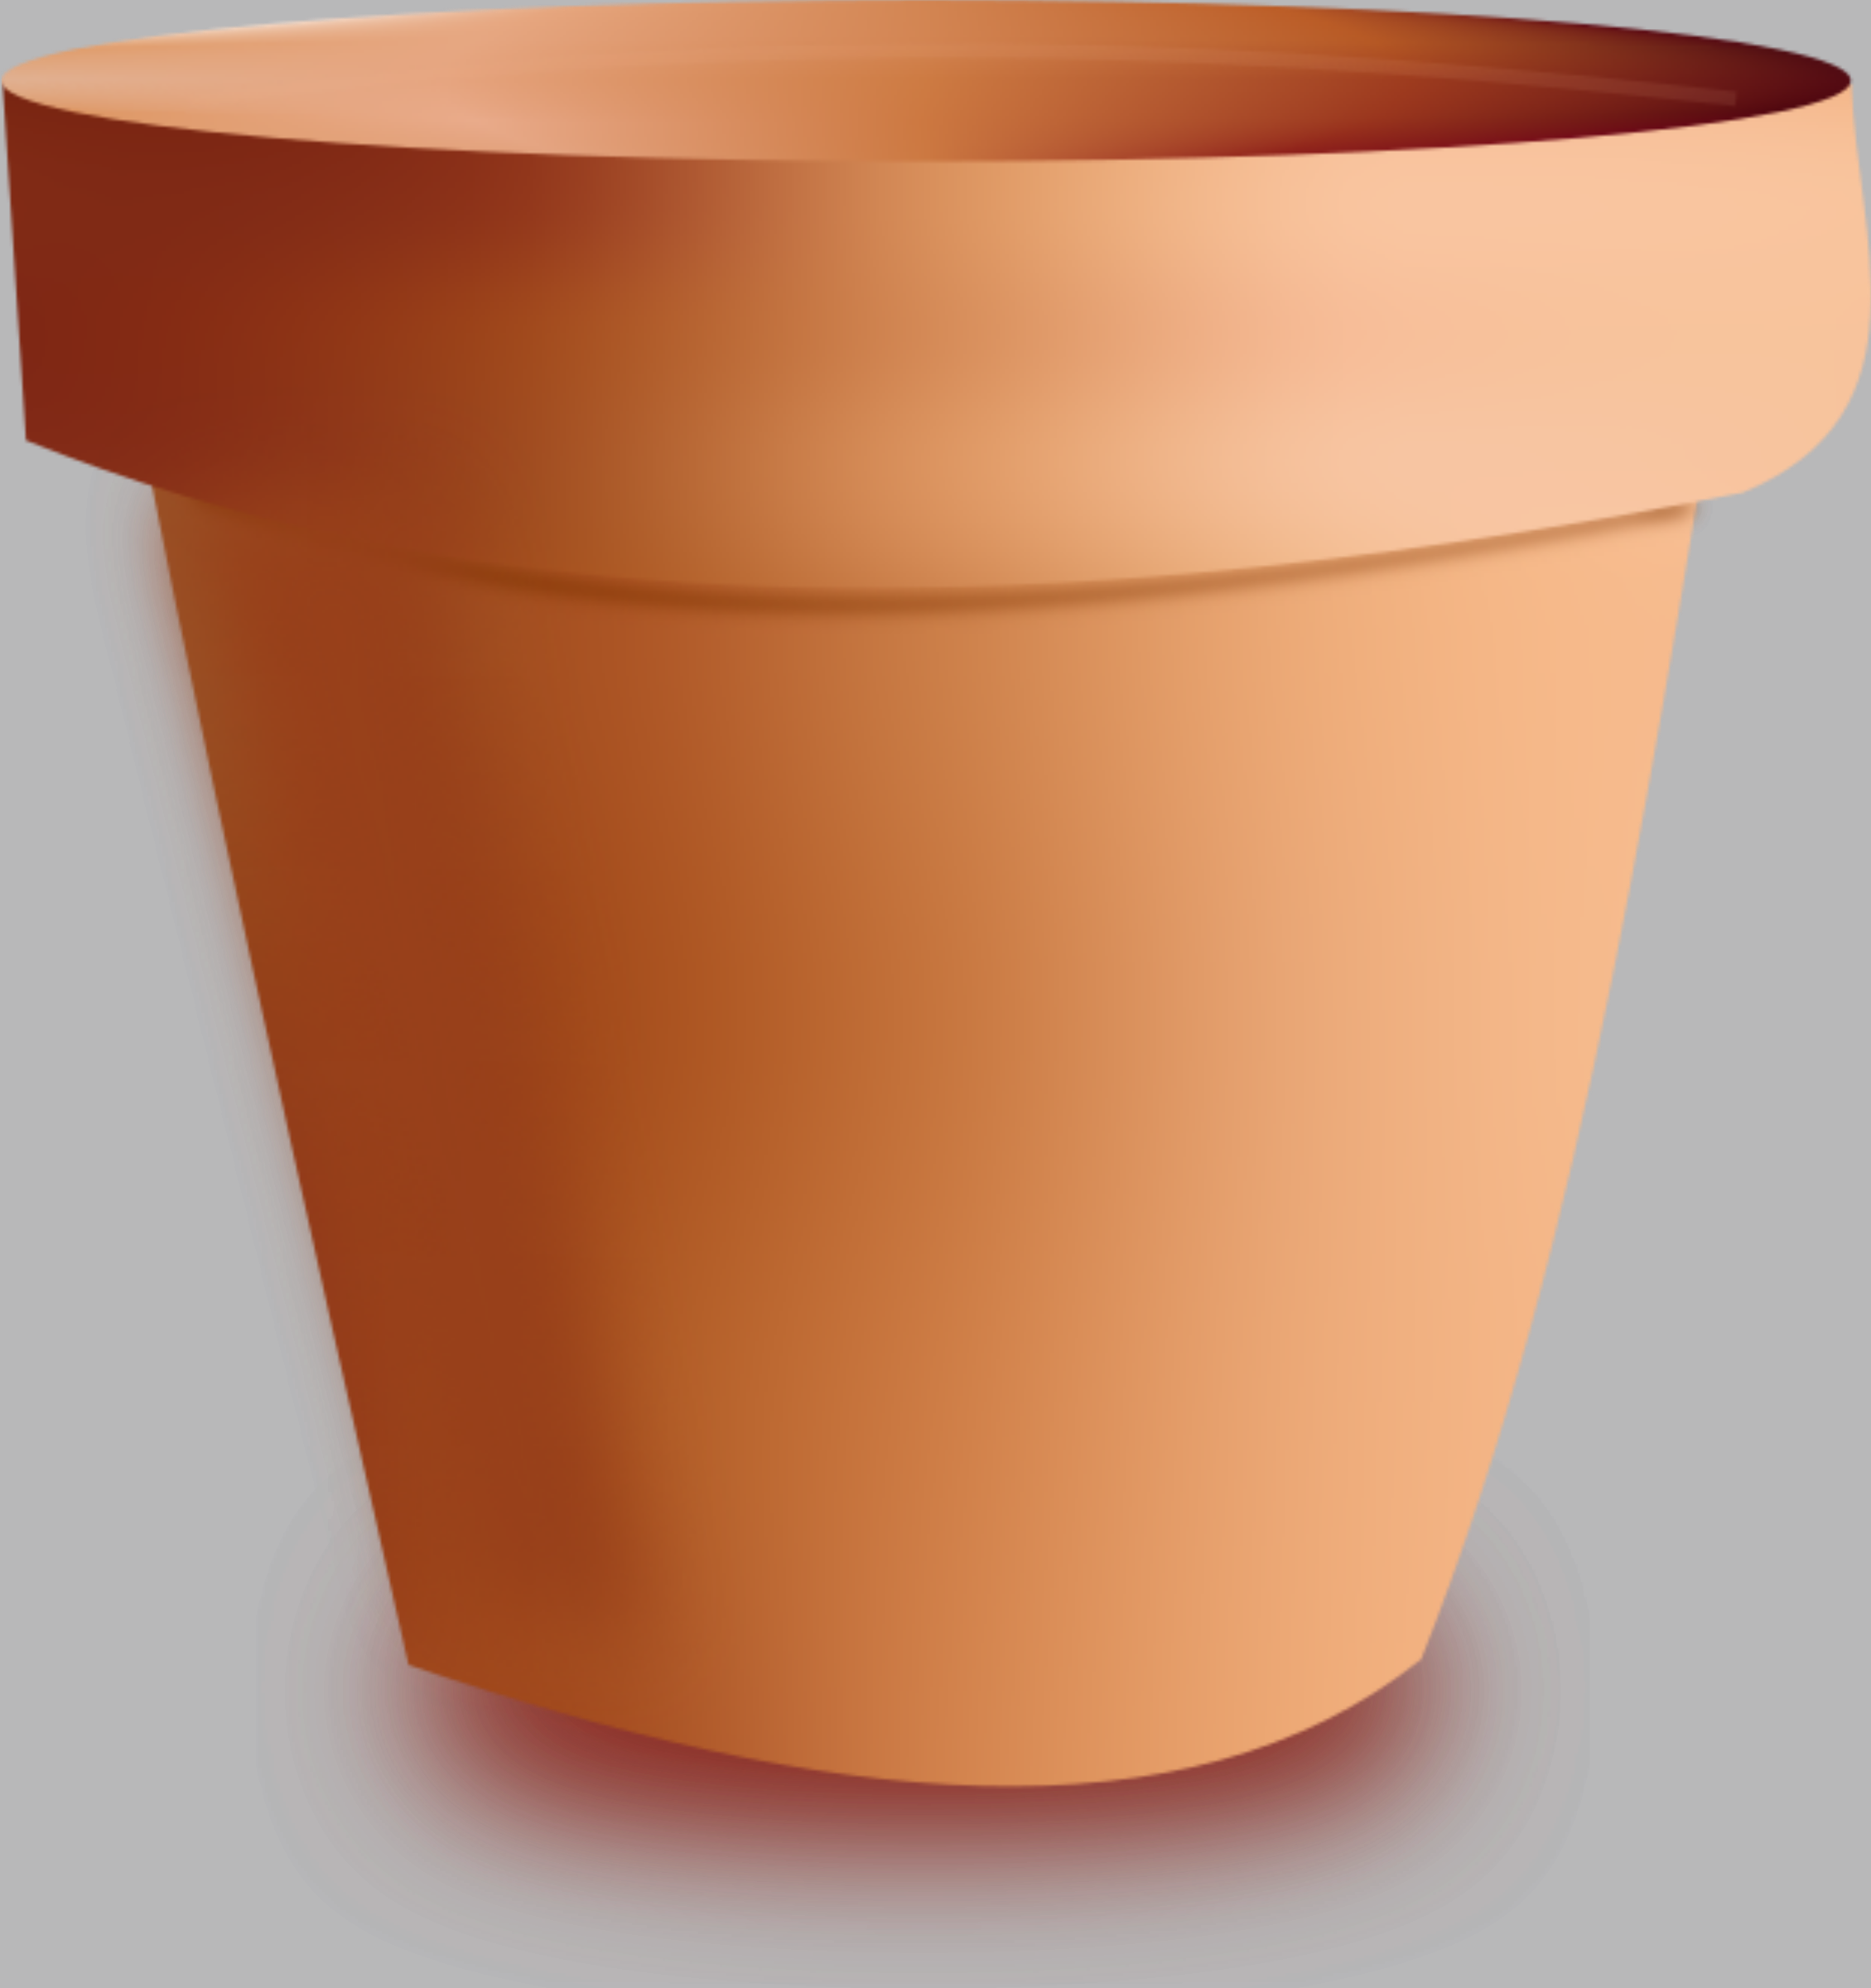 Vaso terracotta by inkscapeforum.it